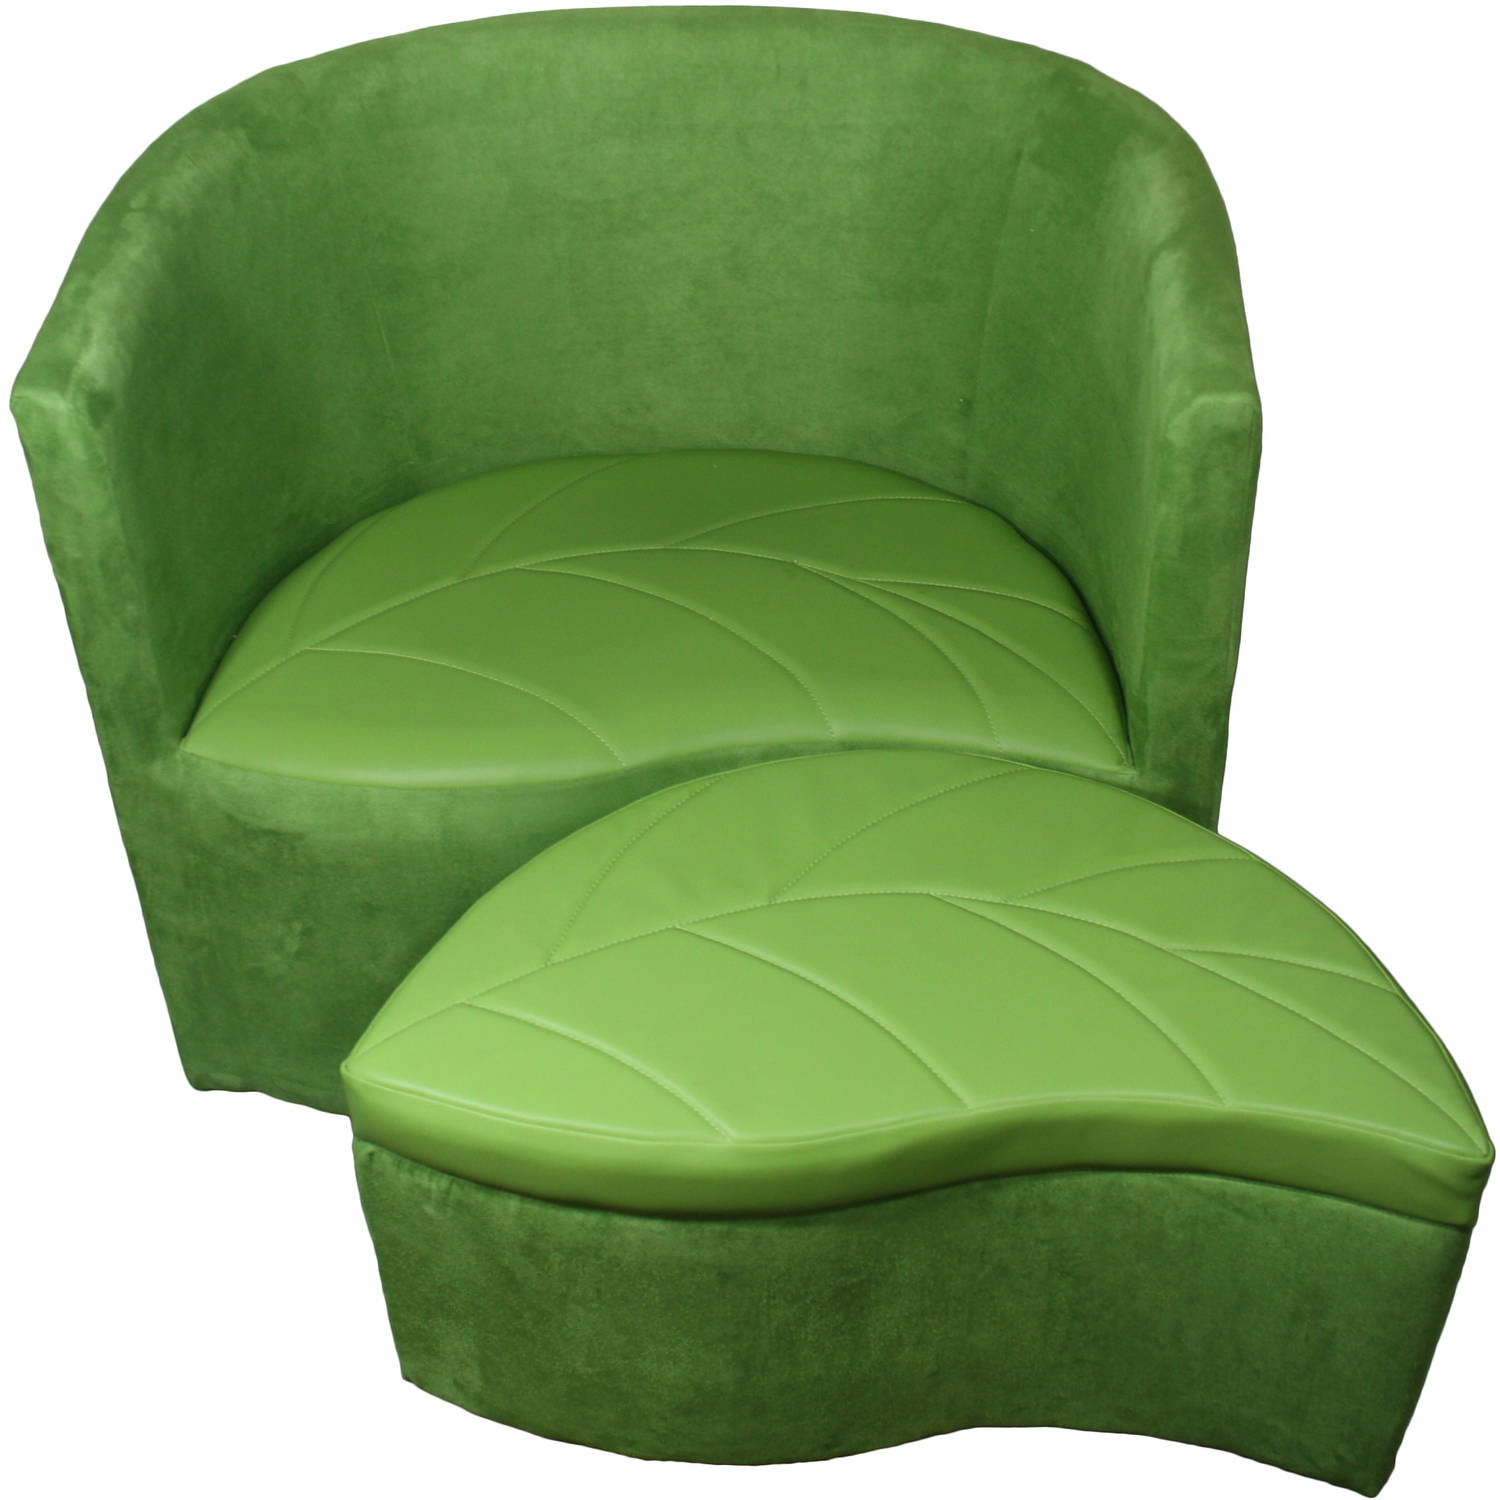 "29"" Green Suede Accent Chair with Storage Ottoman"